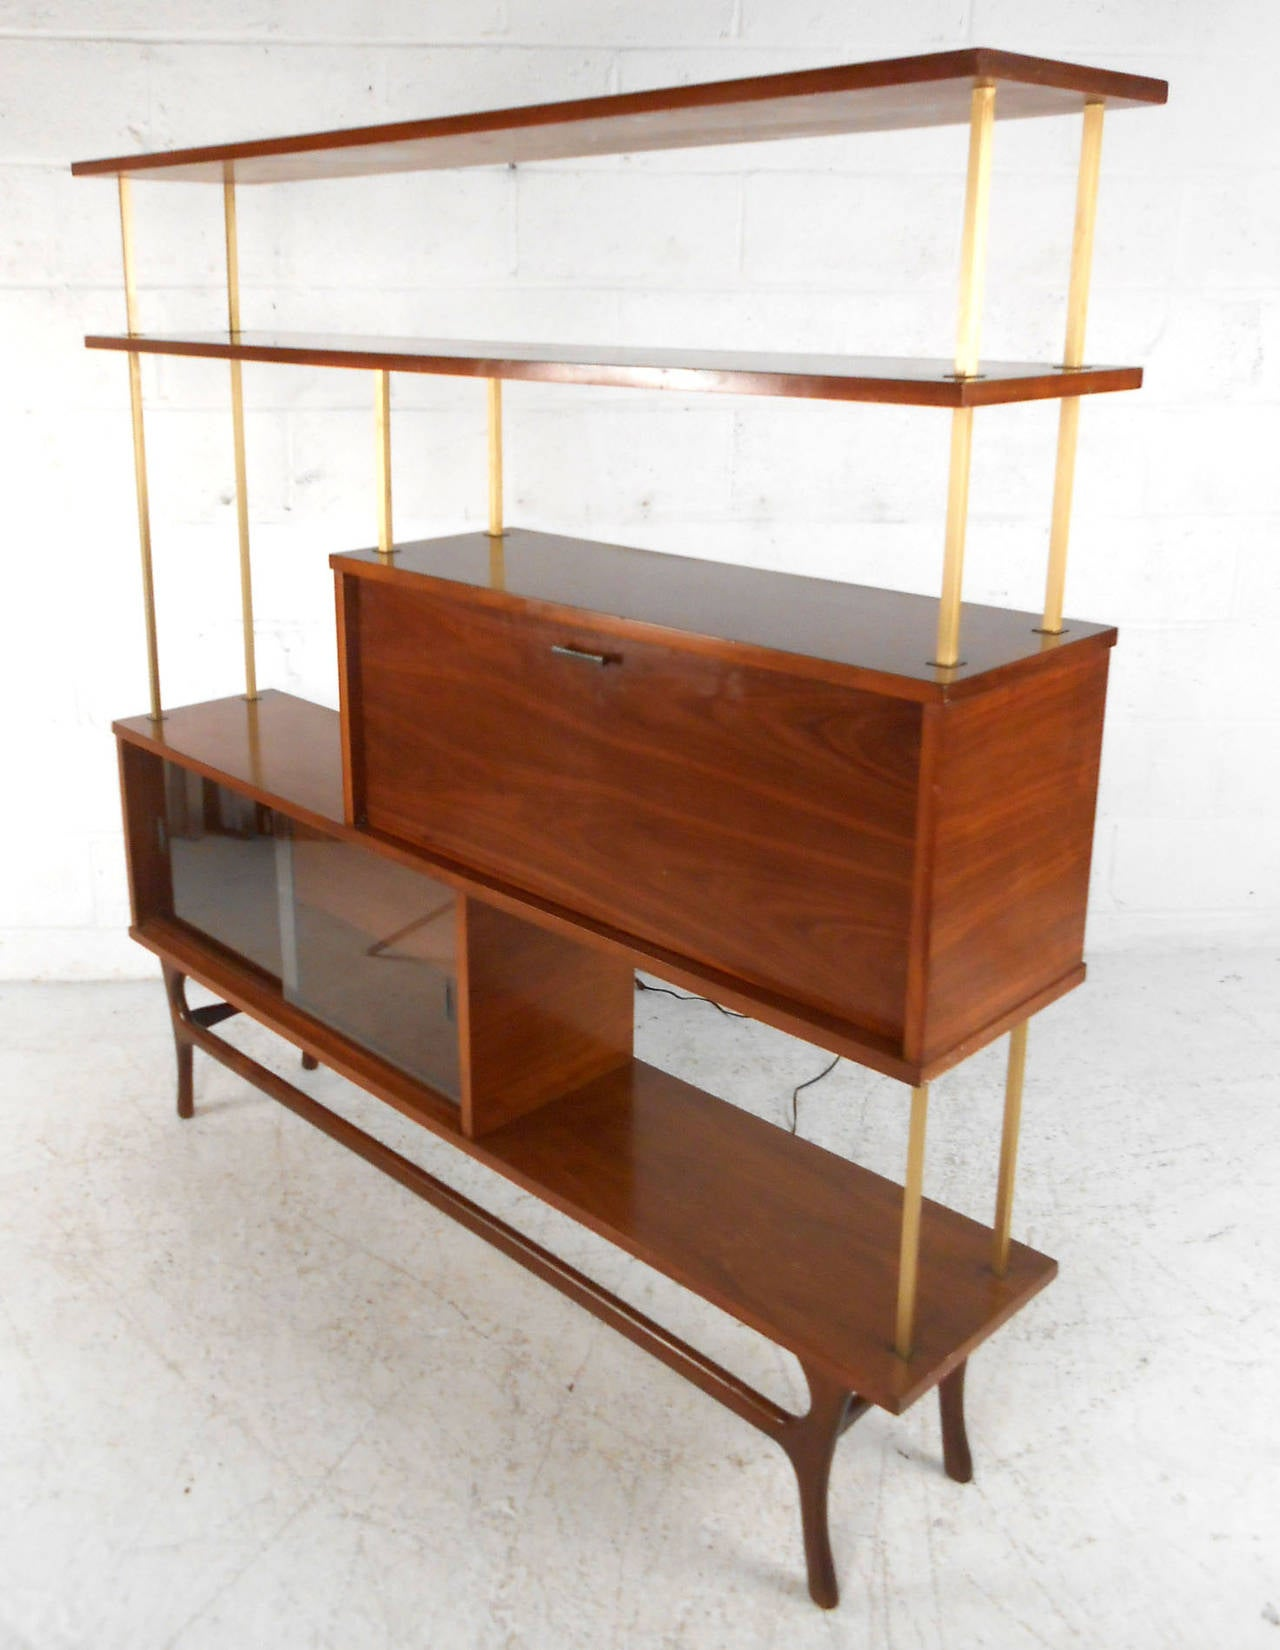 cabinet sideboard midcentury to bar within modern console furniture applied your mid teak decor house s tv or century lovely